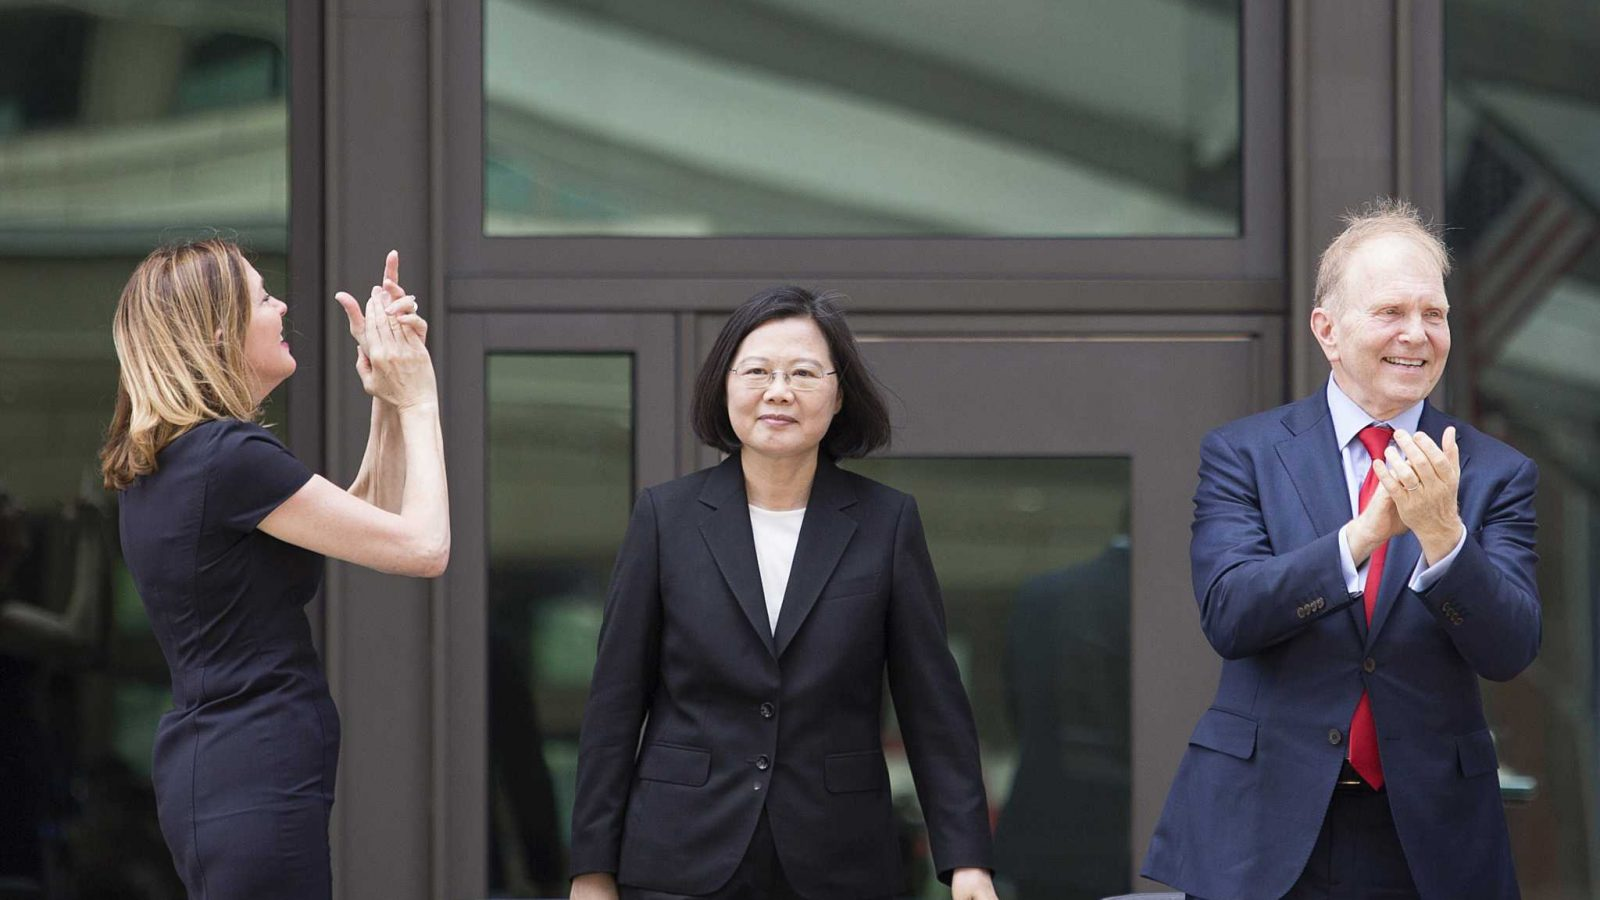 Taiwanese President Tsai Ing-wen, center, at a dedication ceremony for the American Institute in Taiwan's new complex in Taipei, Taiwan, in June 2018